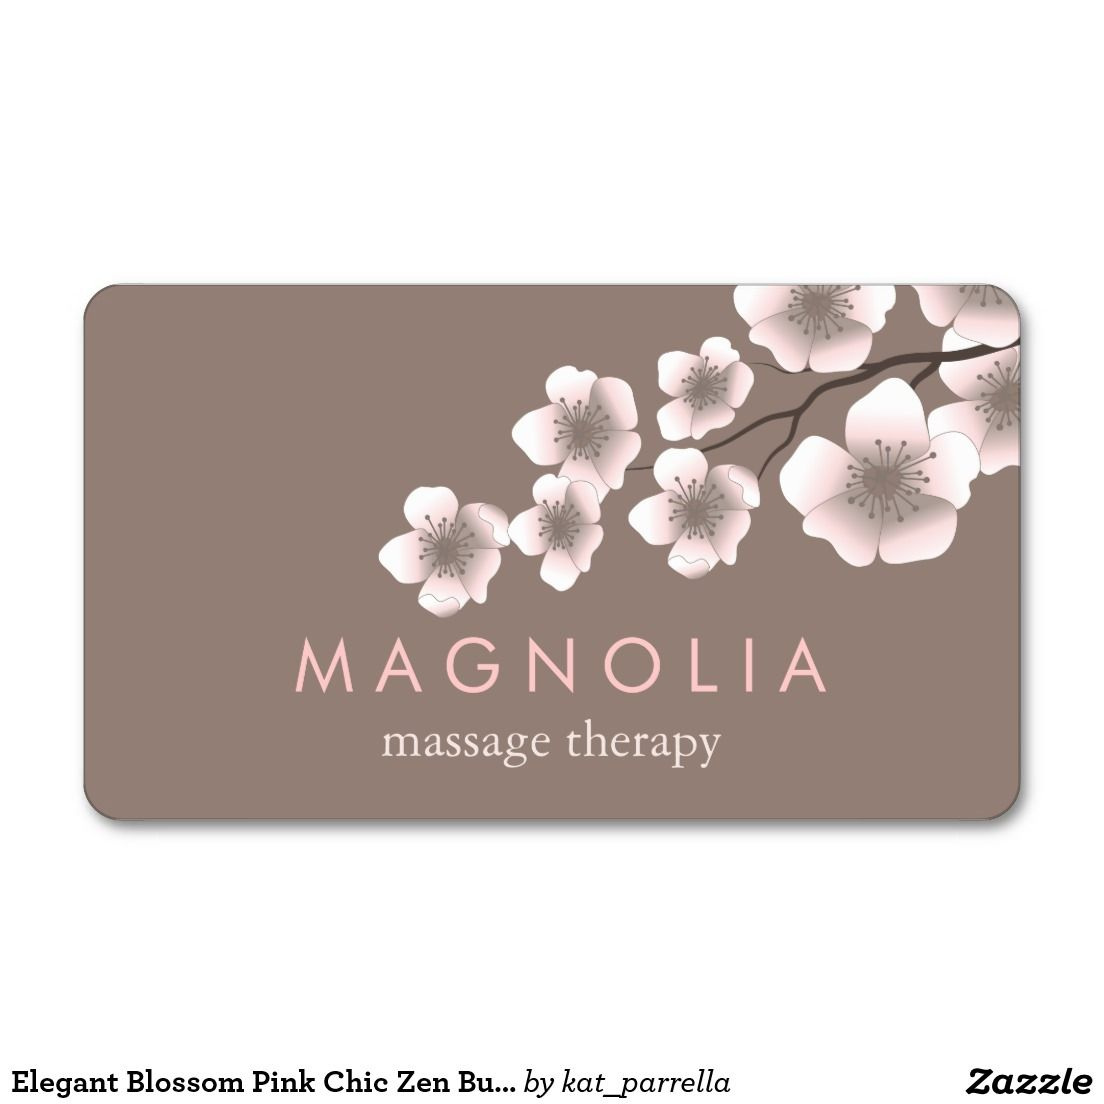 Elegant Blossom Pink Chic Zen Business Card | BusinessCardChic ...